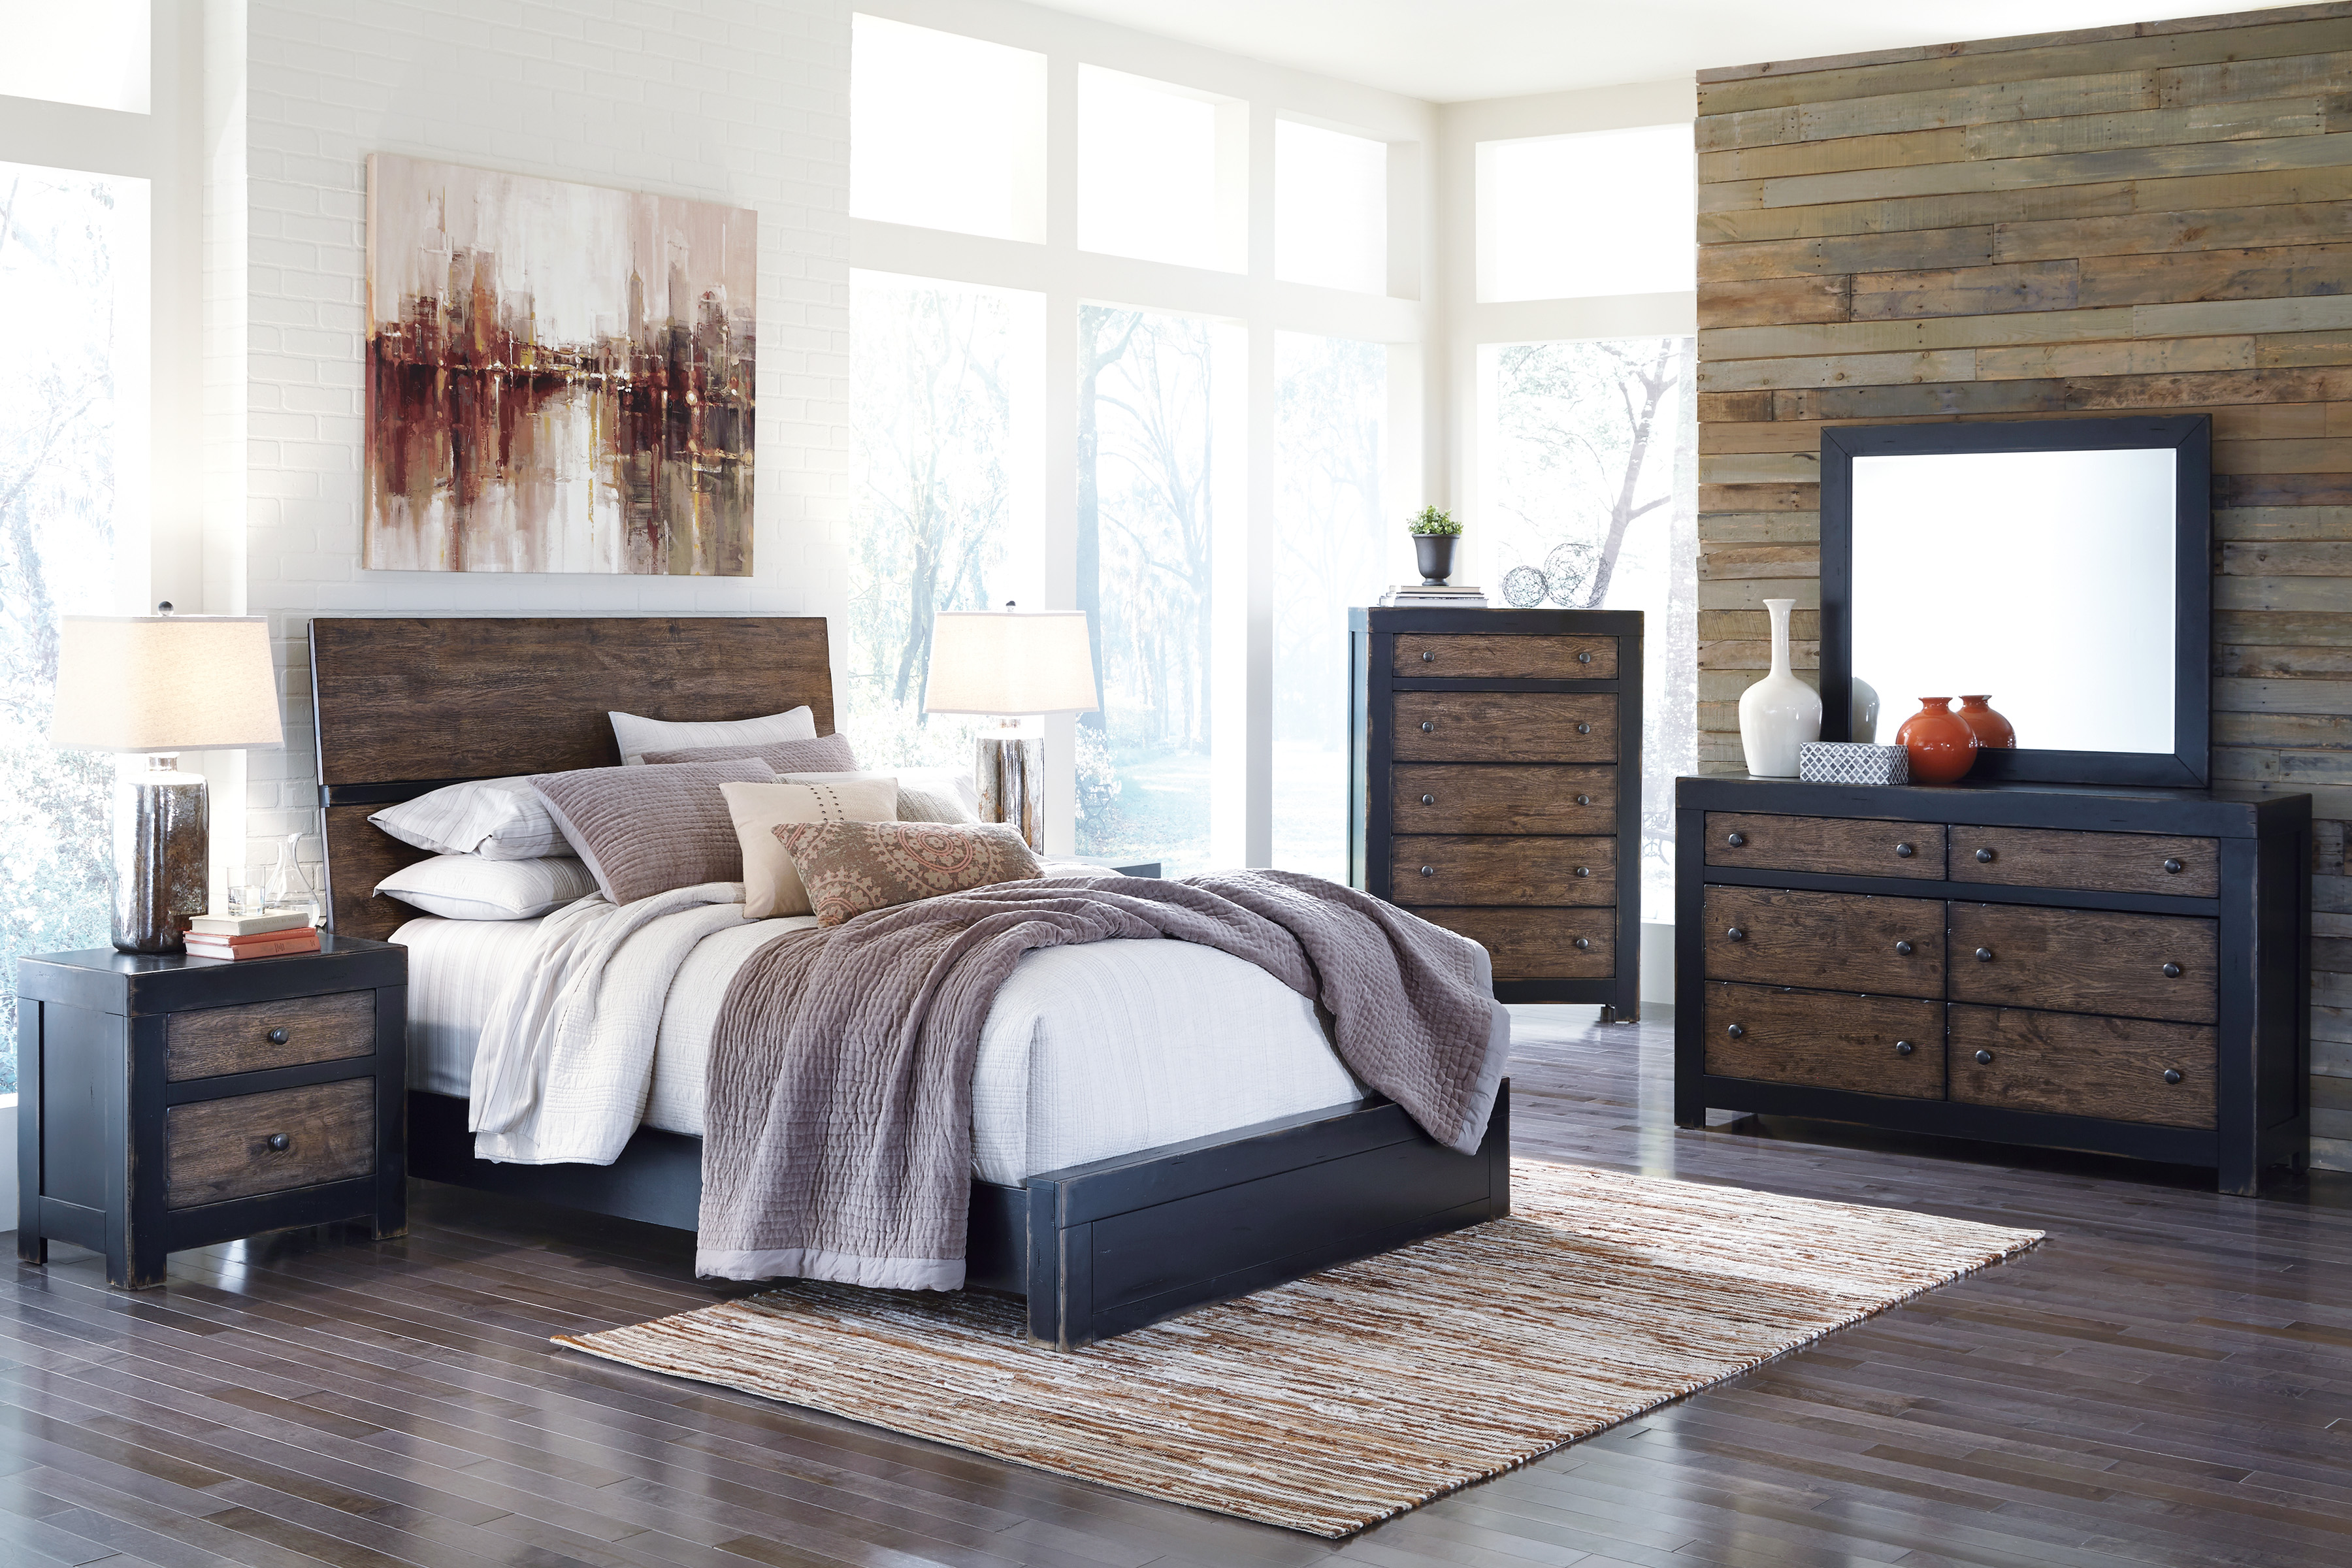 5 Tips For Layering Area Rugs | AFW